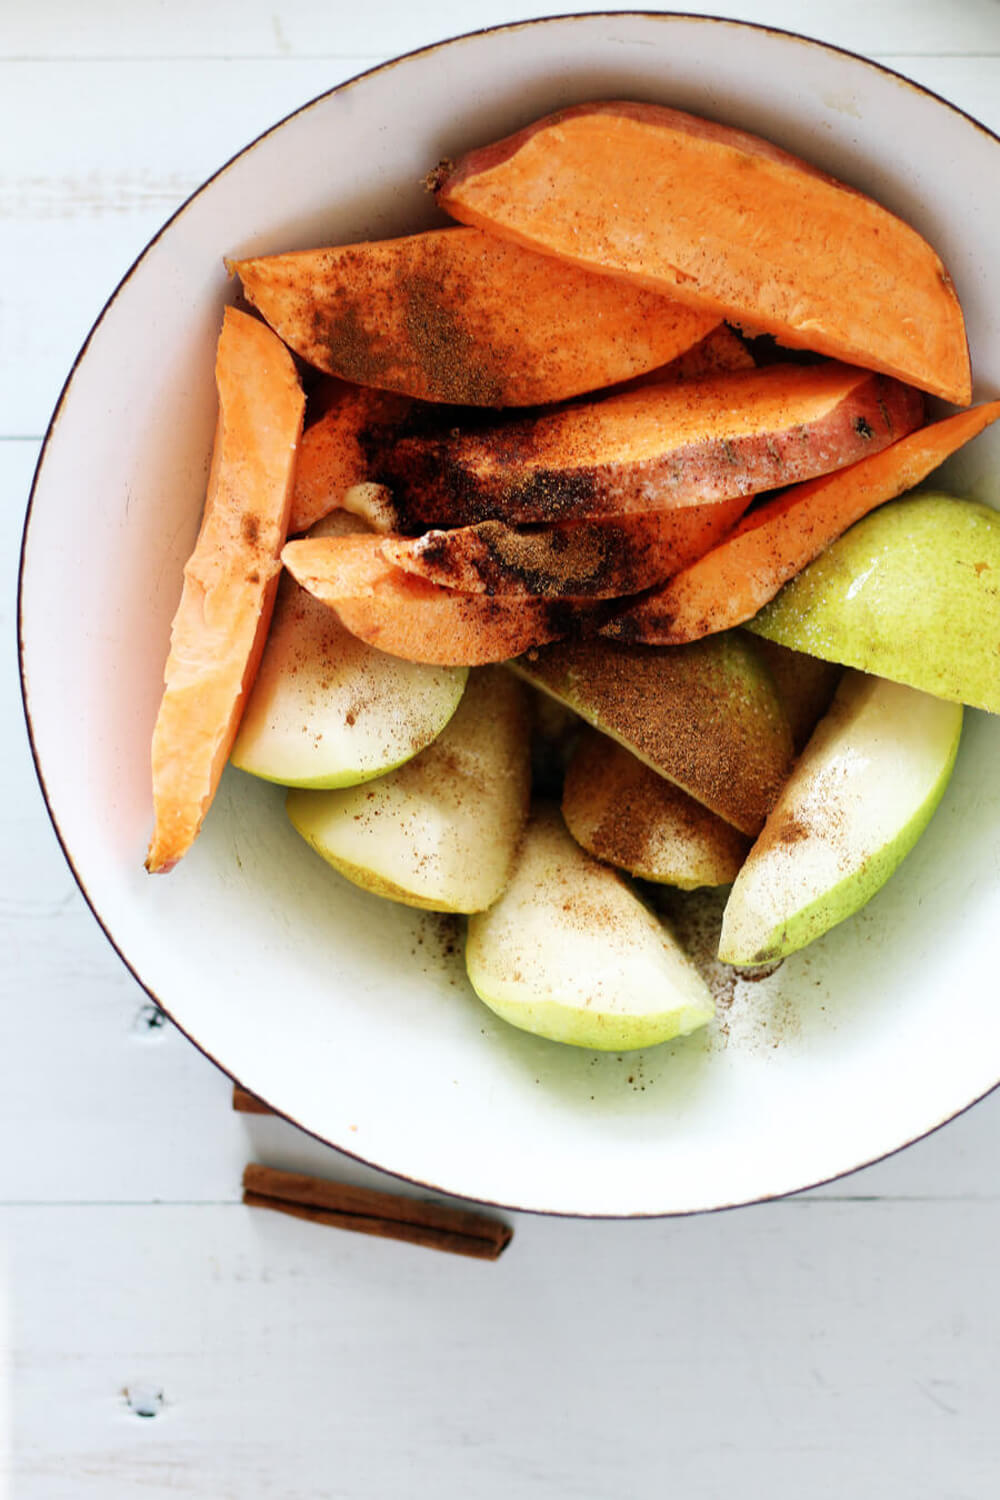 sliced pears and sweet potatoes